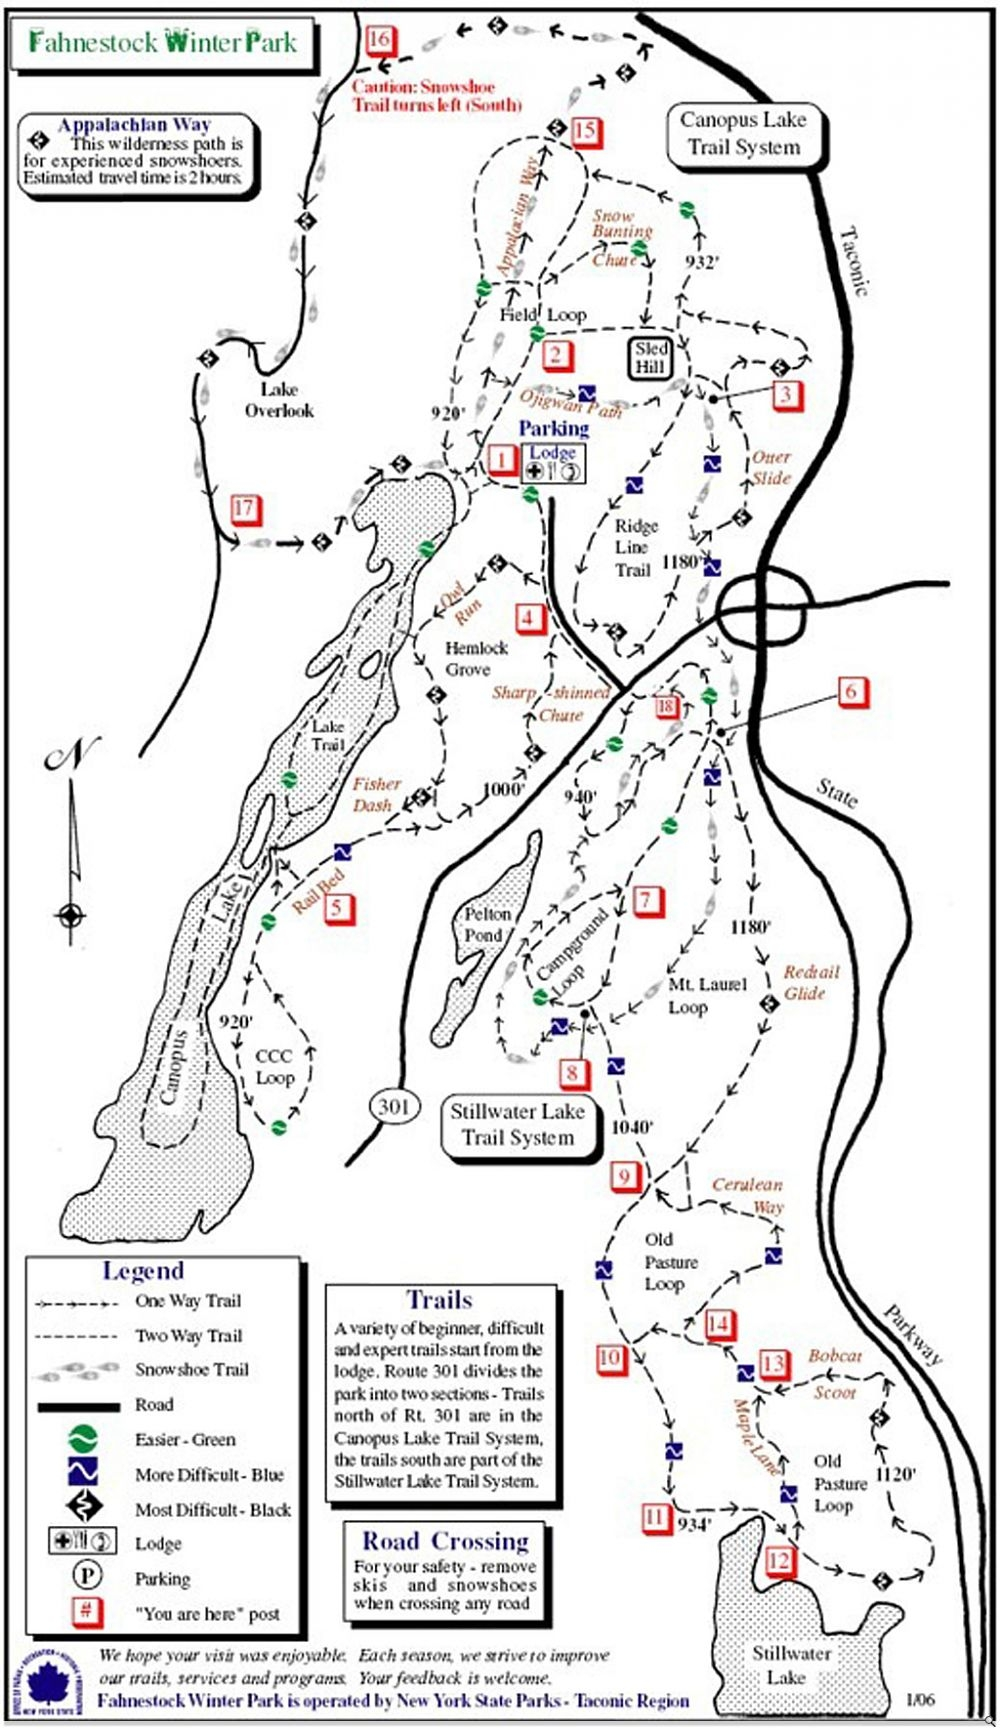 fahnestock-winter-park-ski-trail-map